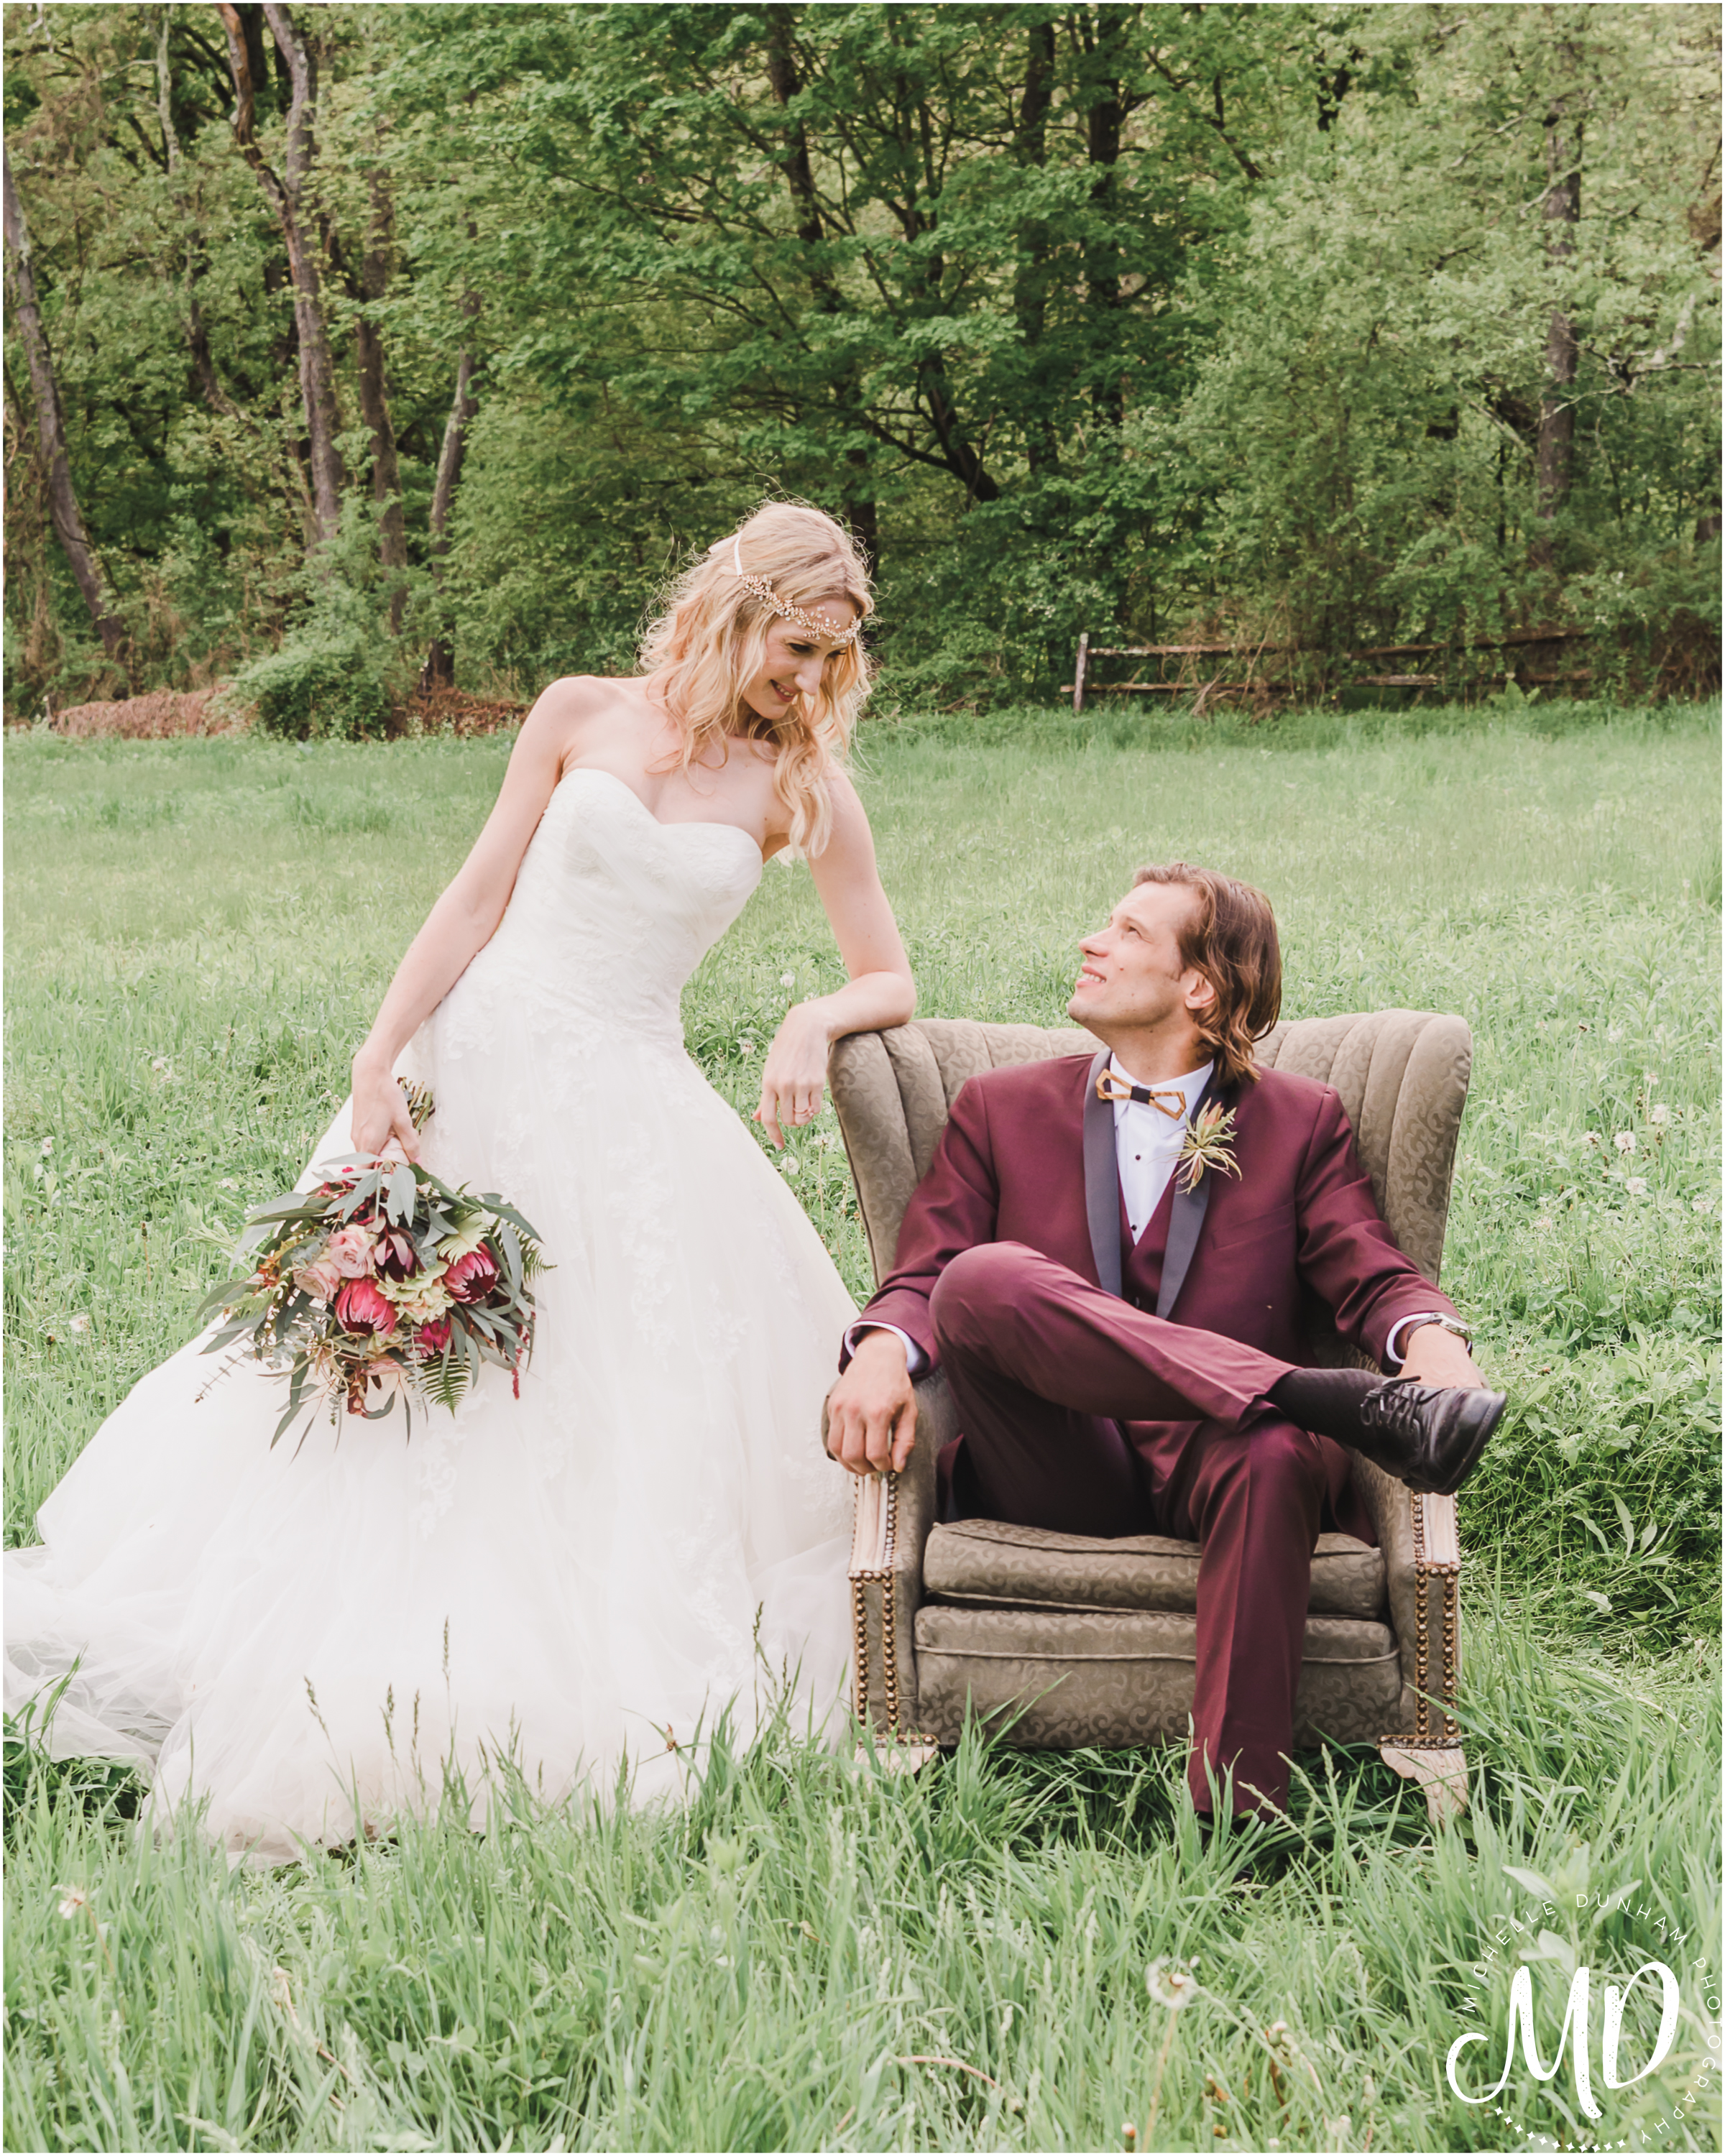 Michelle Dunham Photography_Boho_BrideandGroom_11.jpg